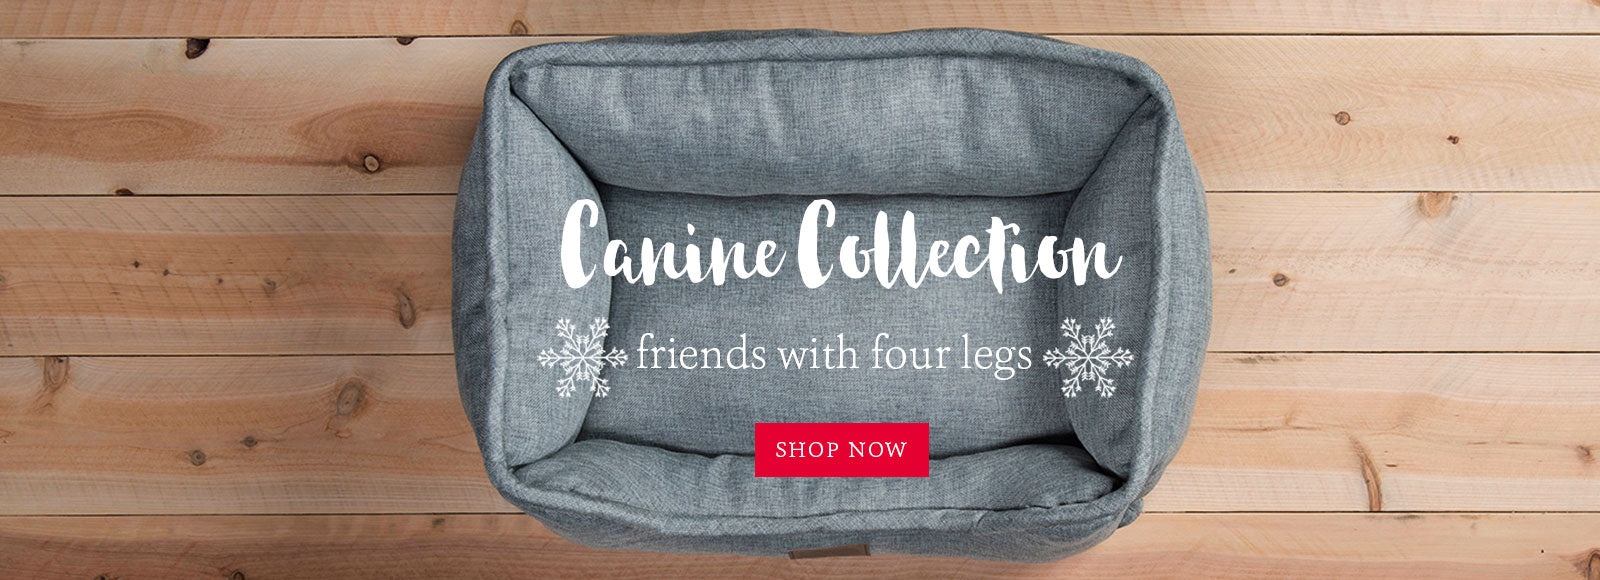 The Normal Brand Canine Collection